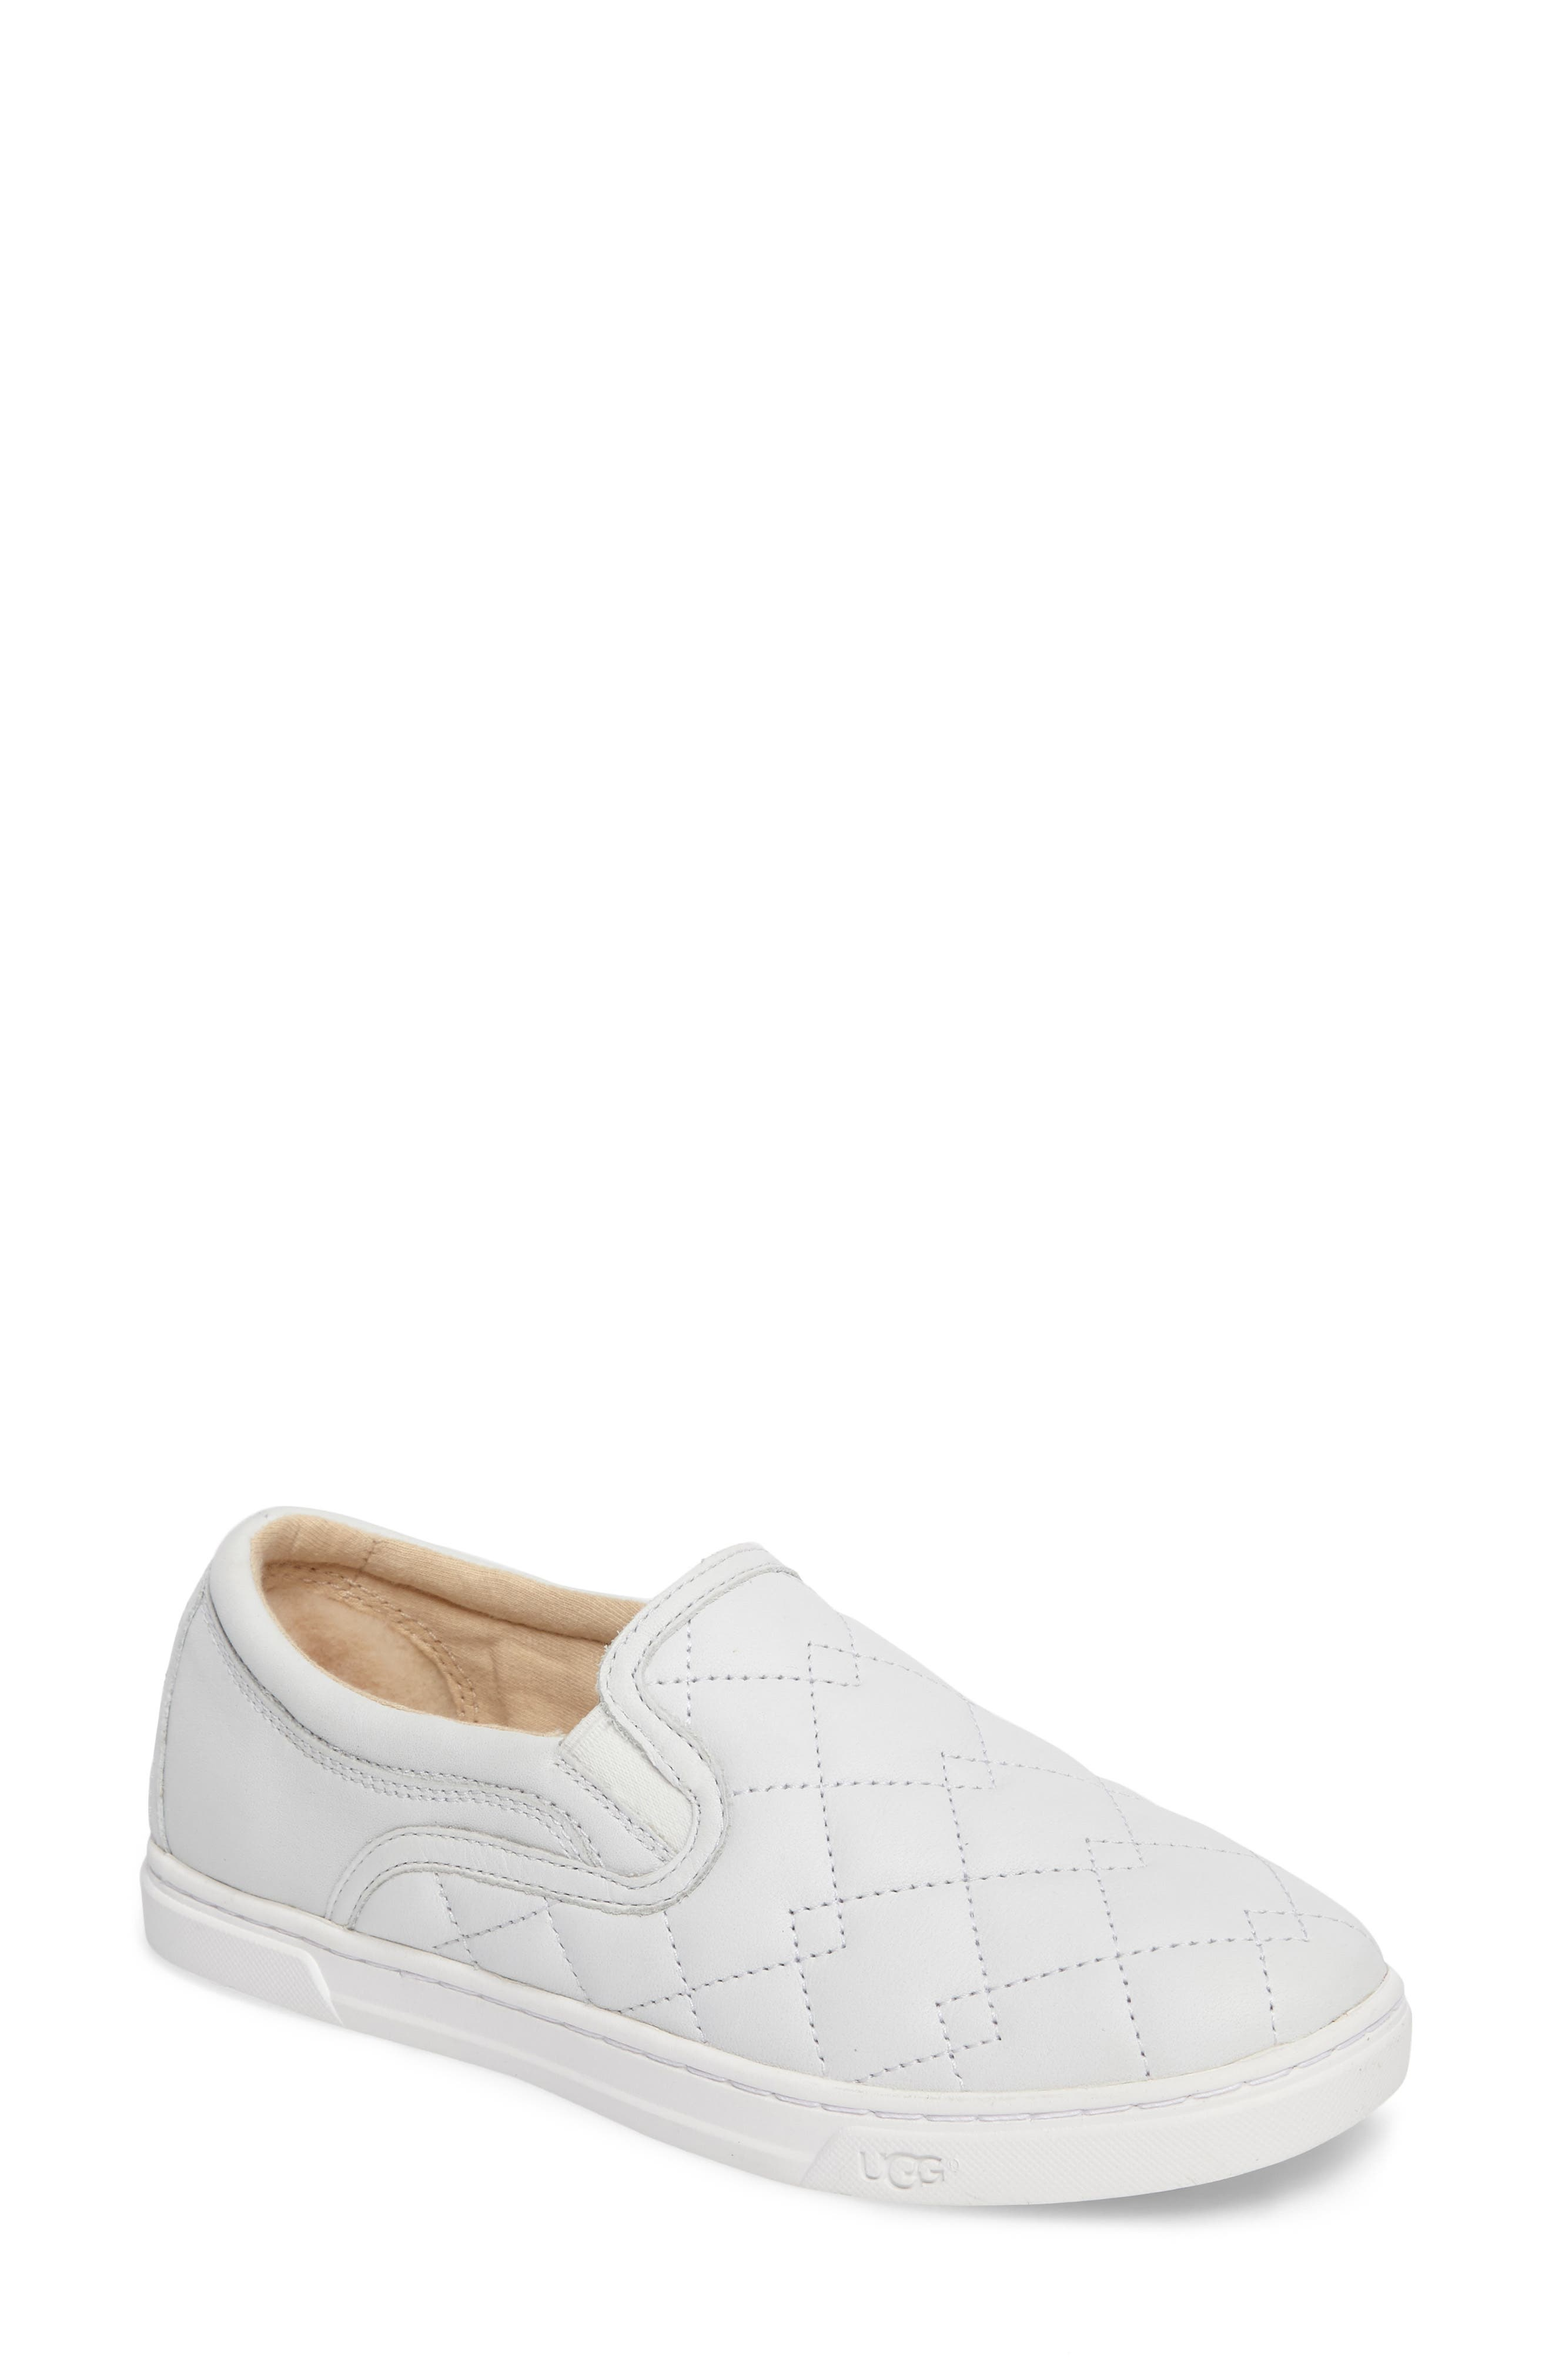 Fierce Deco Quilted Slip-On Sneaker,                         Main,                         color, 100